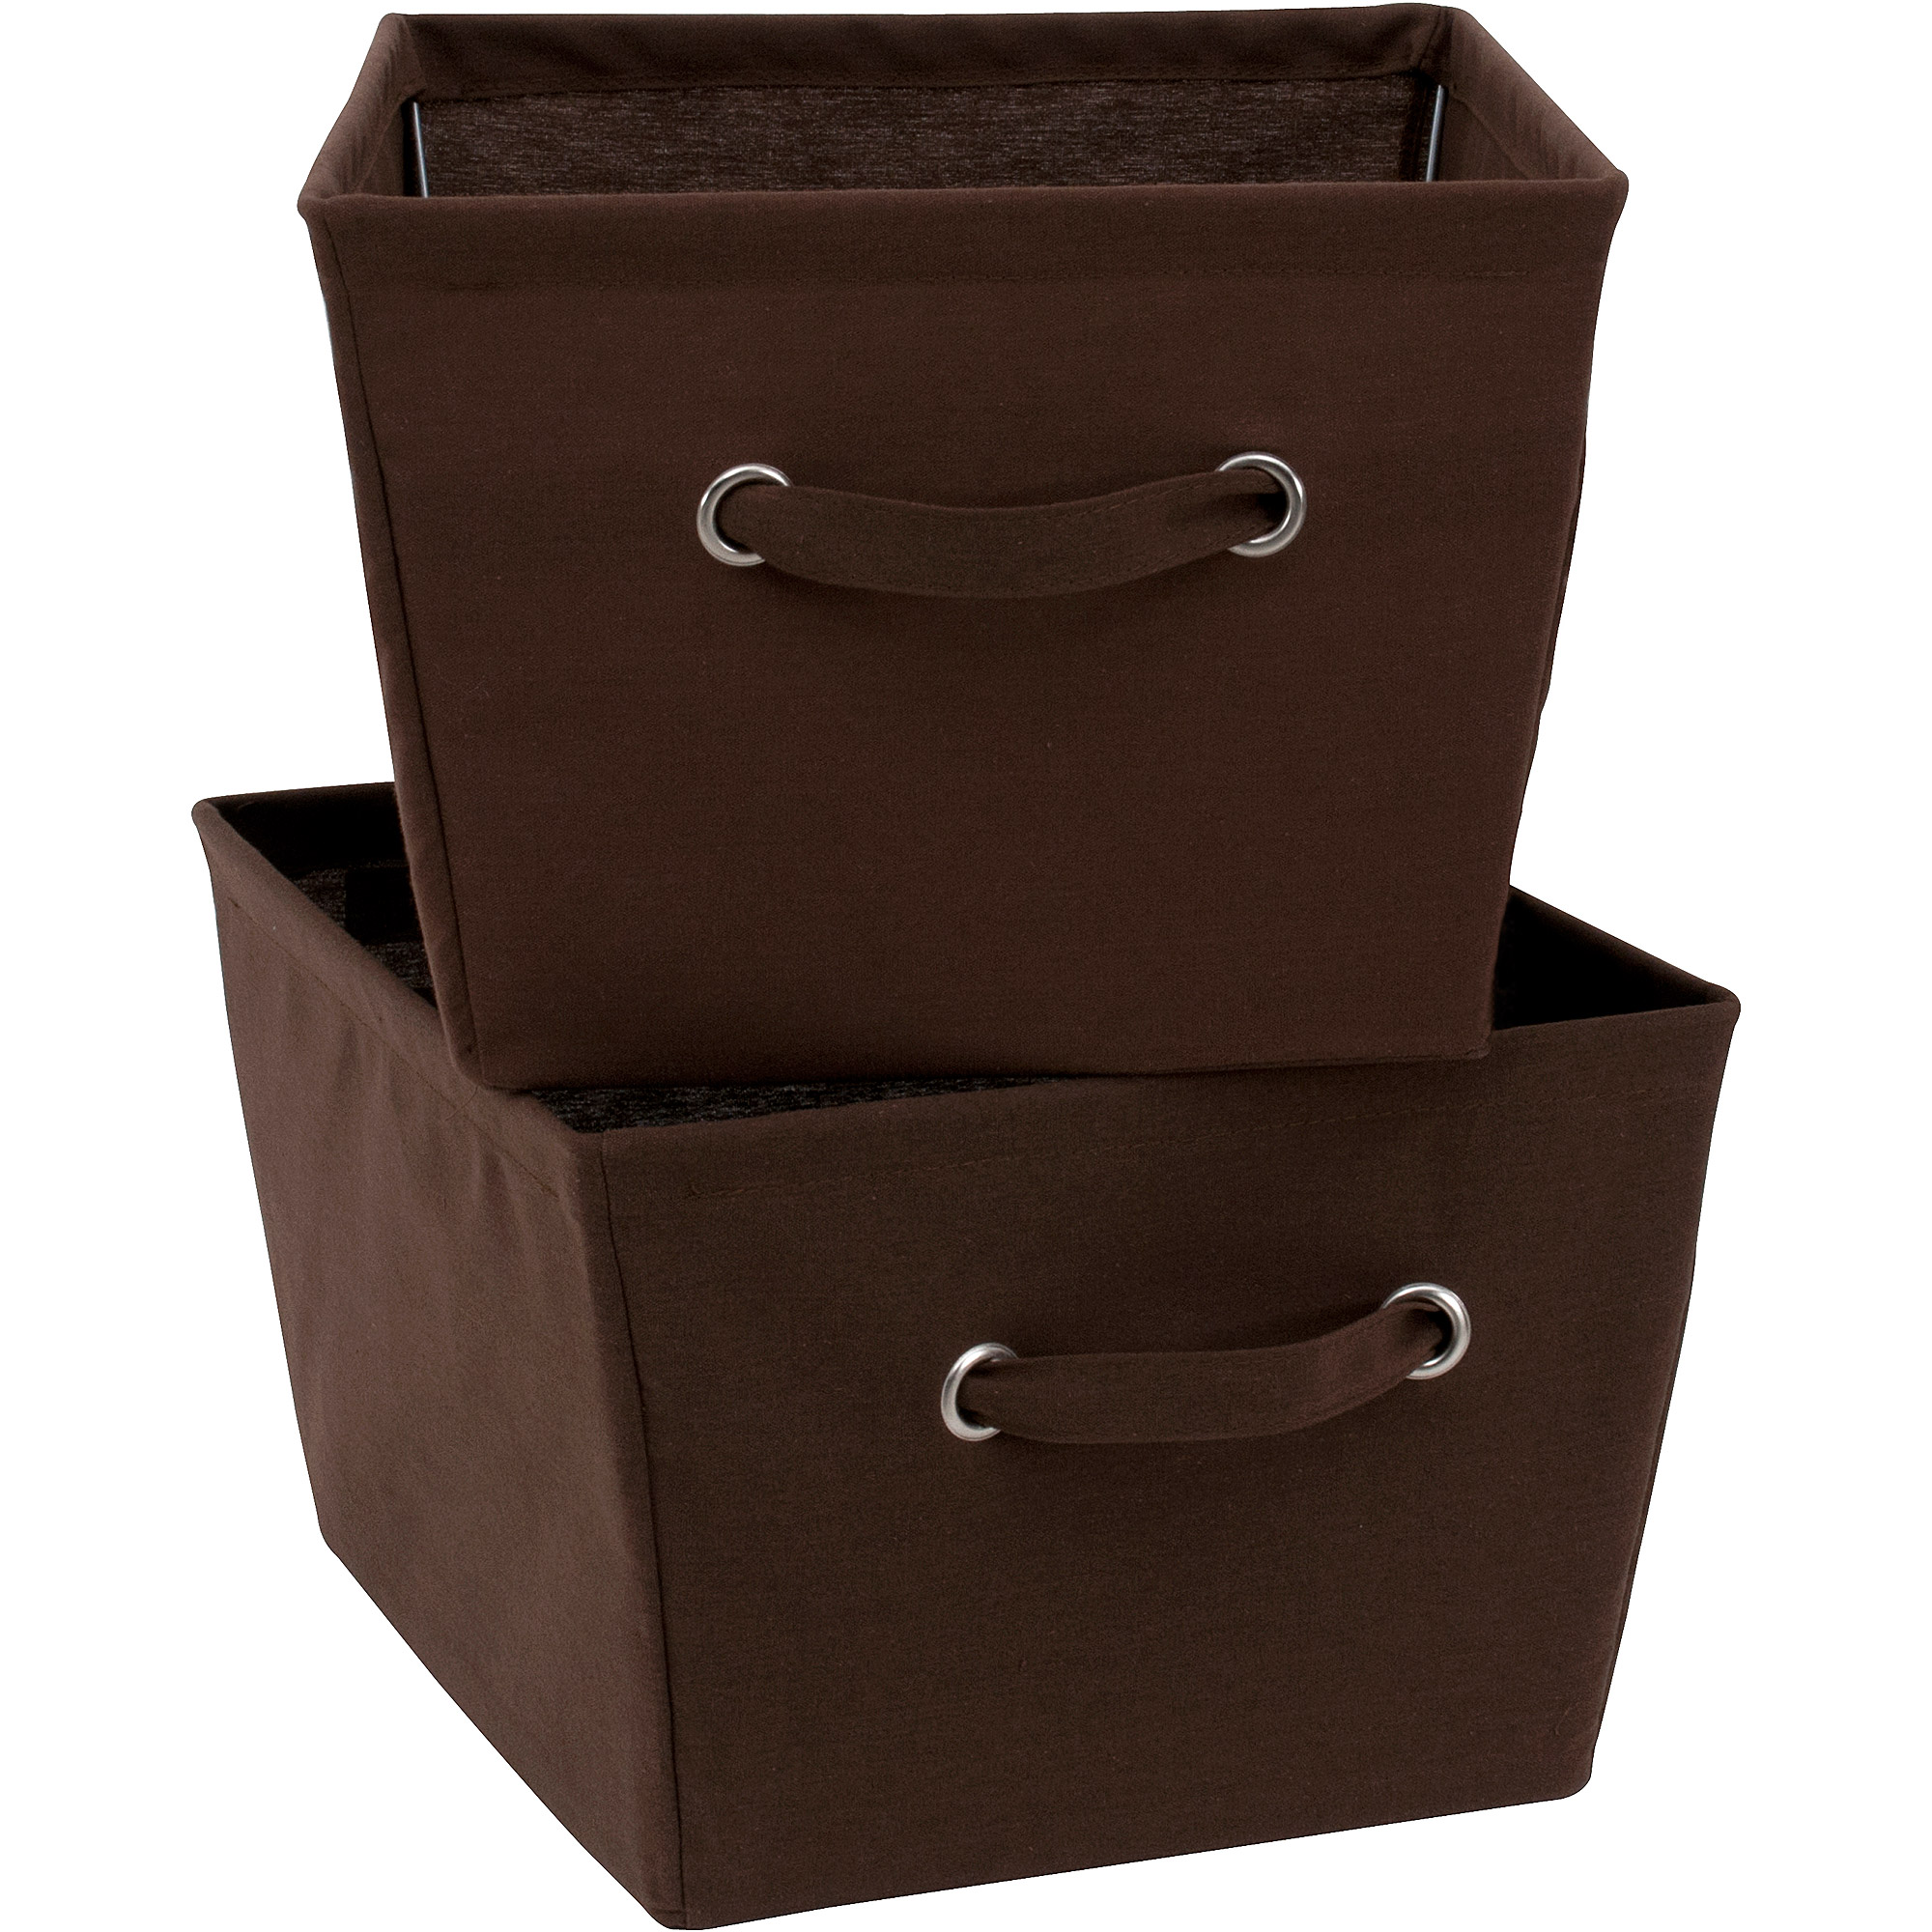 3 Sprouts Shark Storage Fabric Bin   Walmart.com